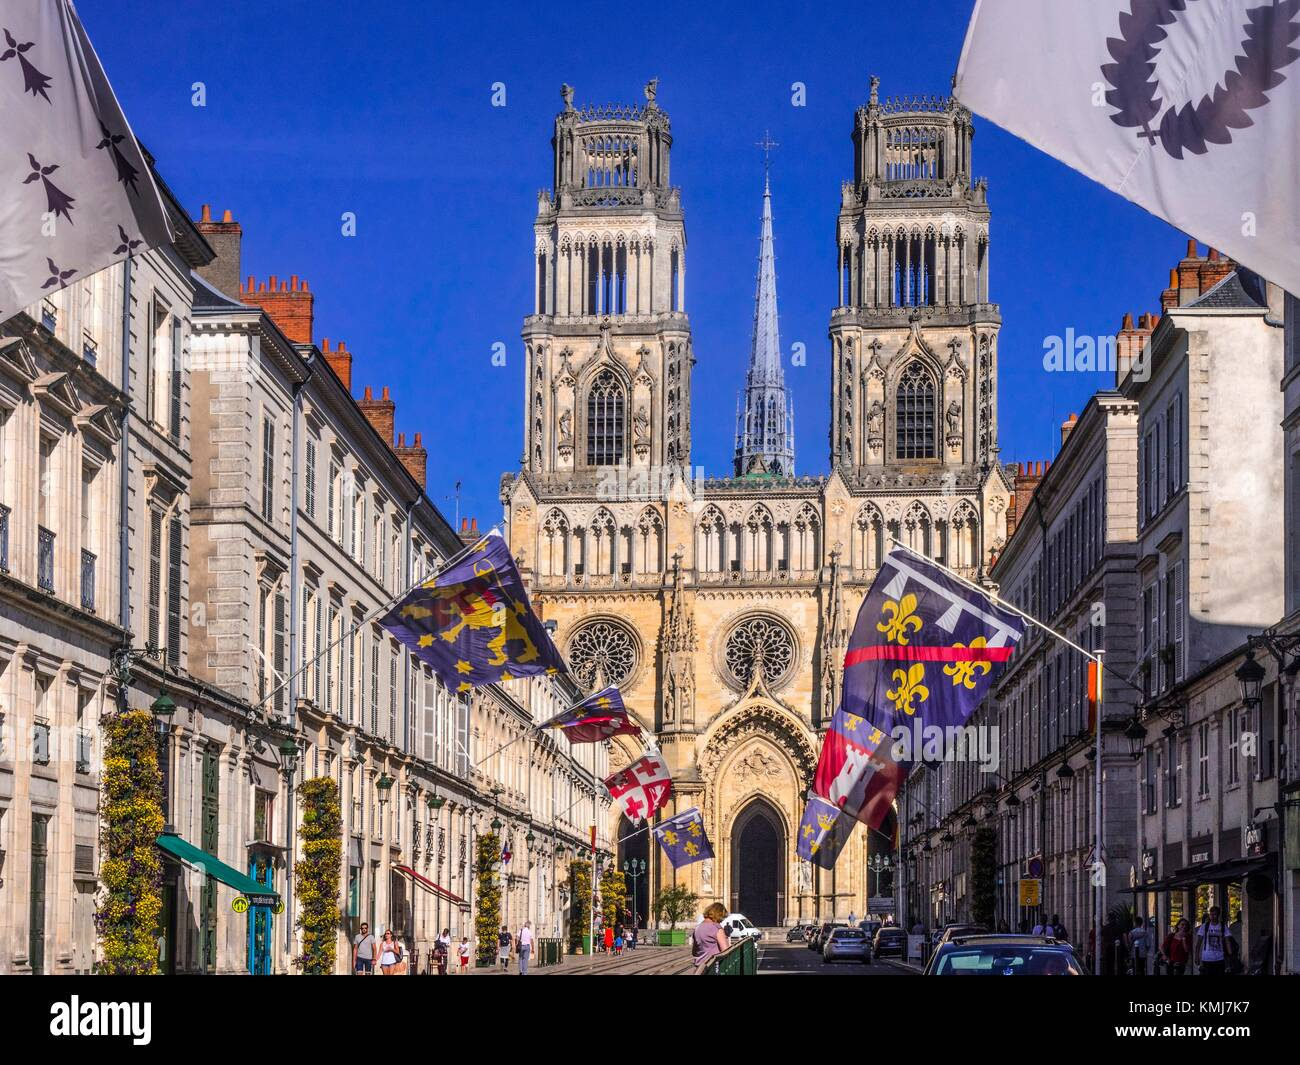 France, Loiret. Cathedrale at Orléans. - Stock Image